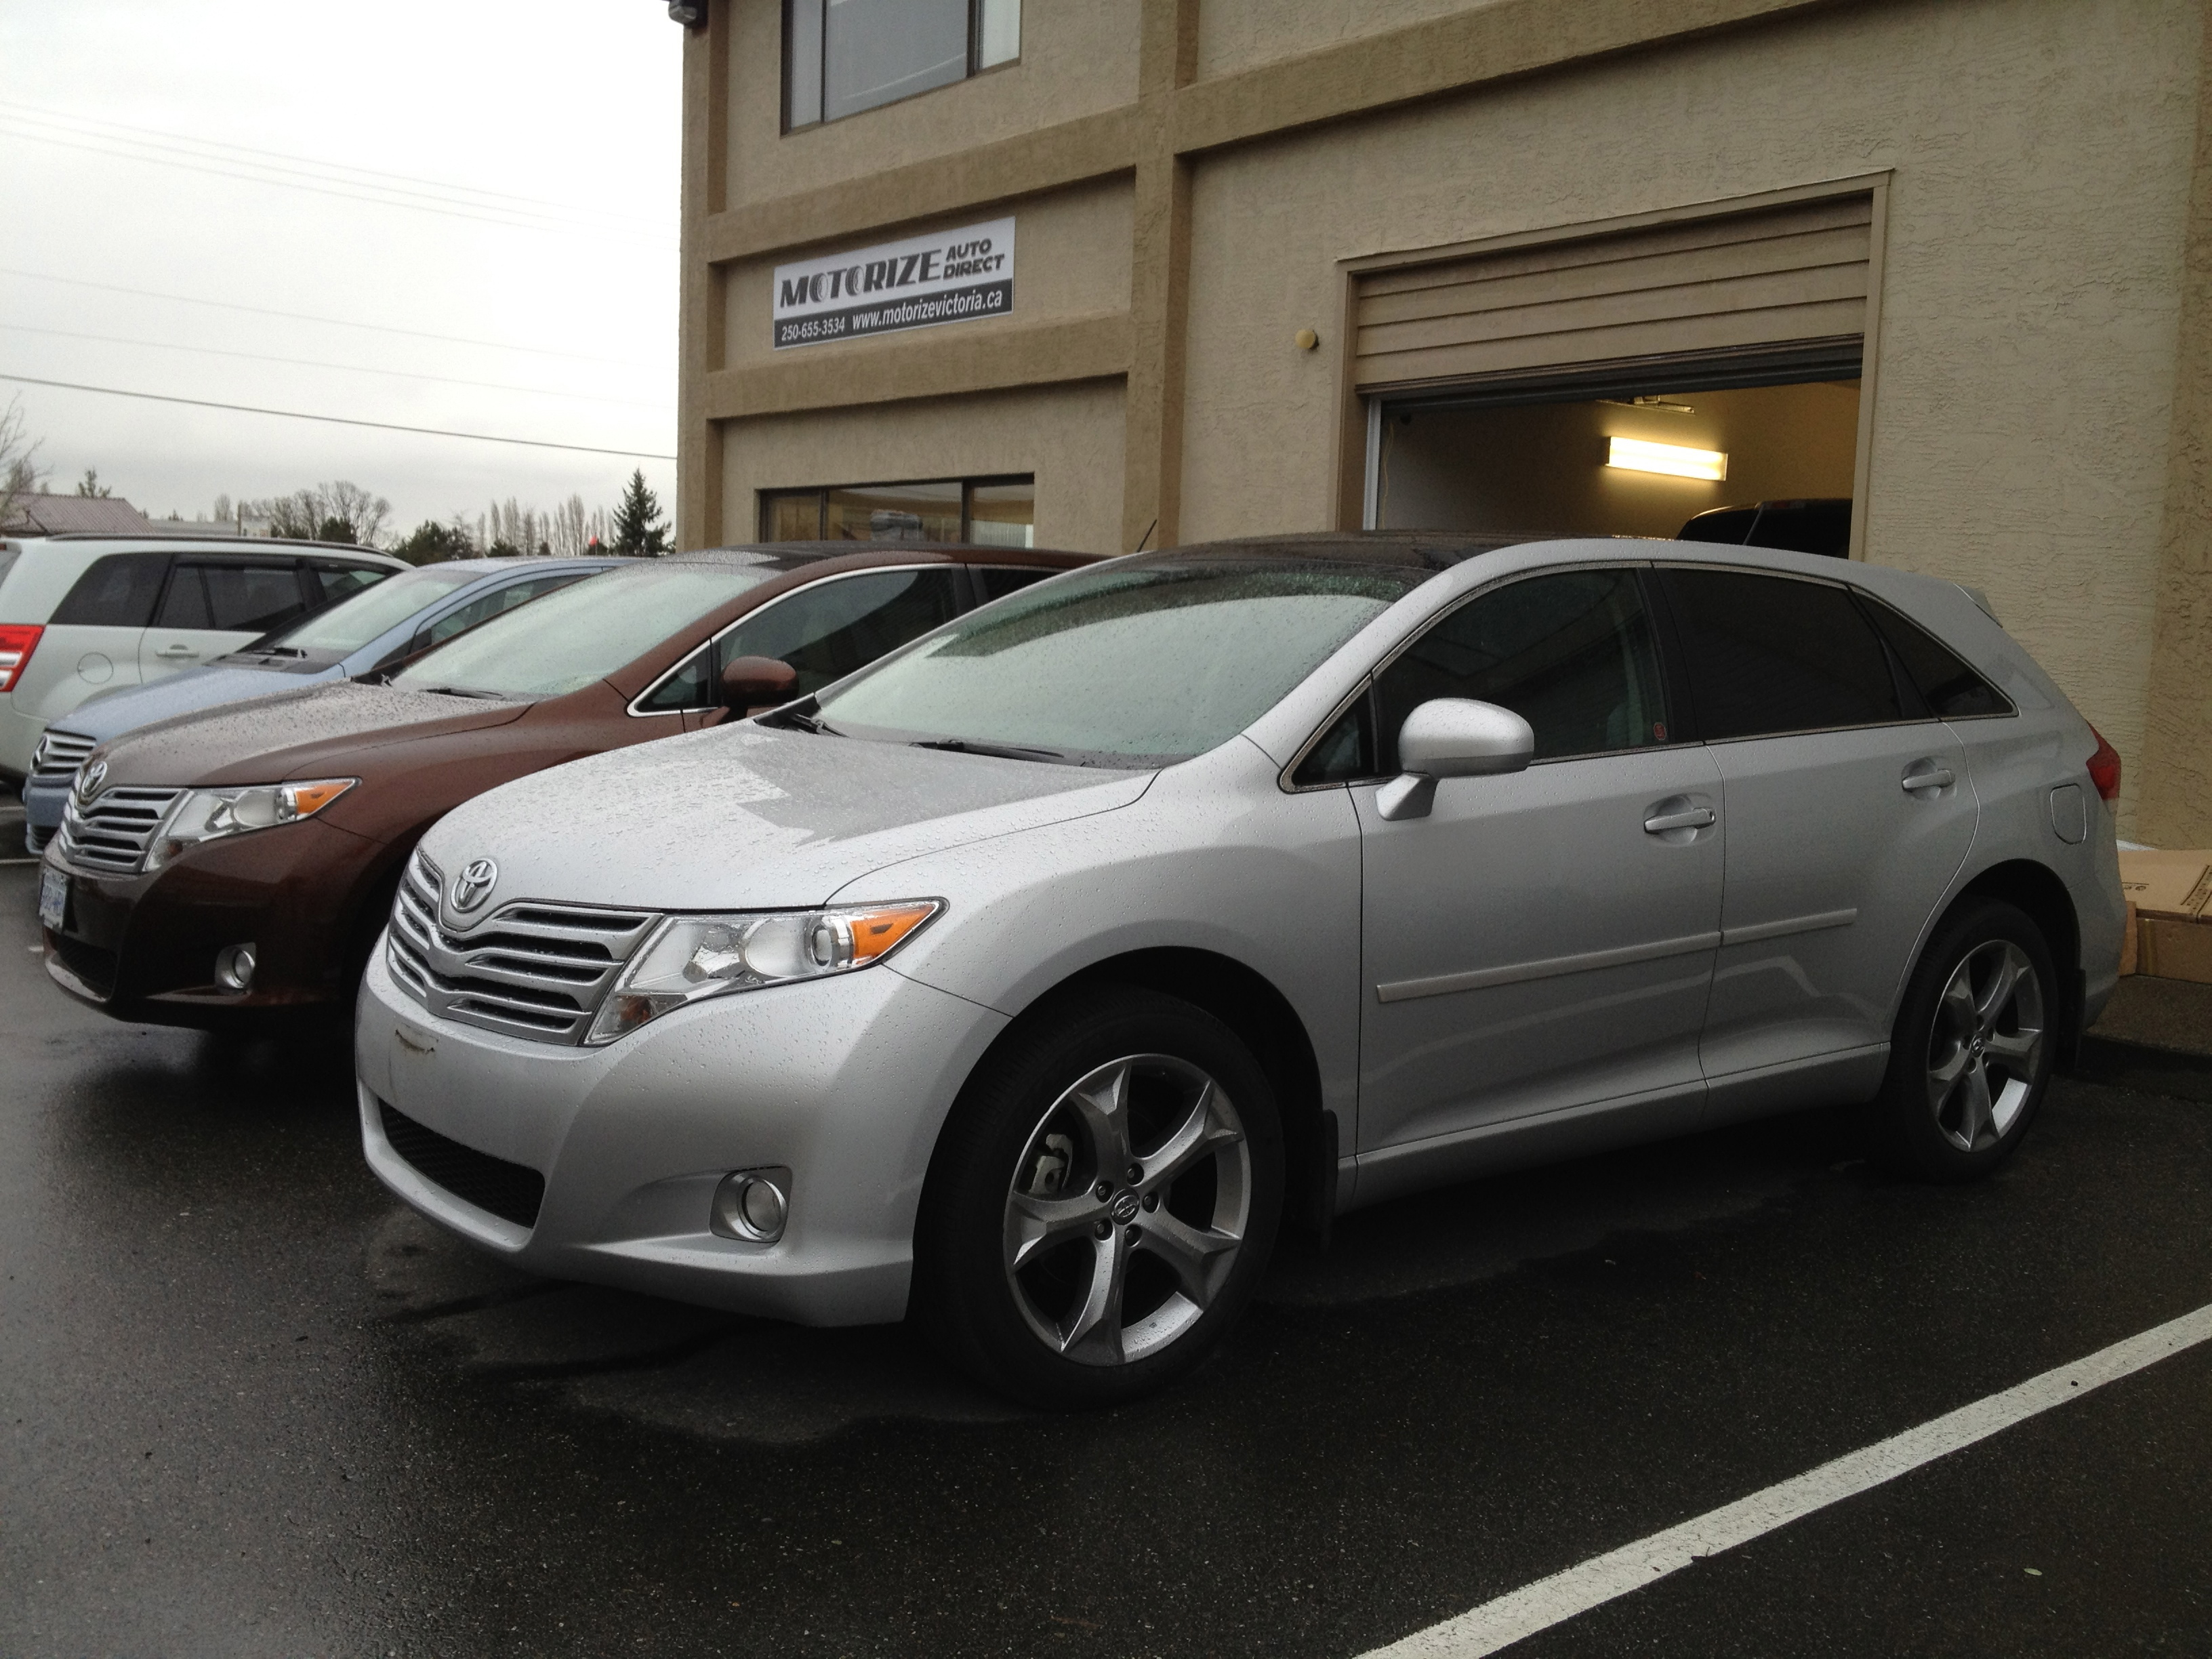 toyota interior fwd venza full dem spot listings front